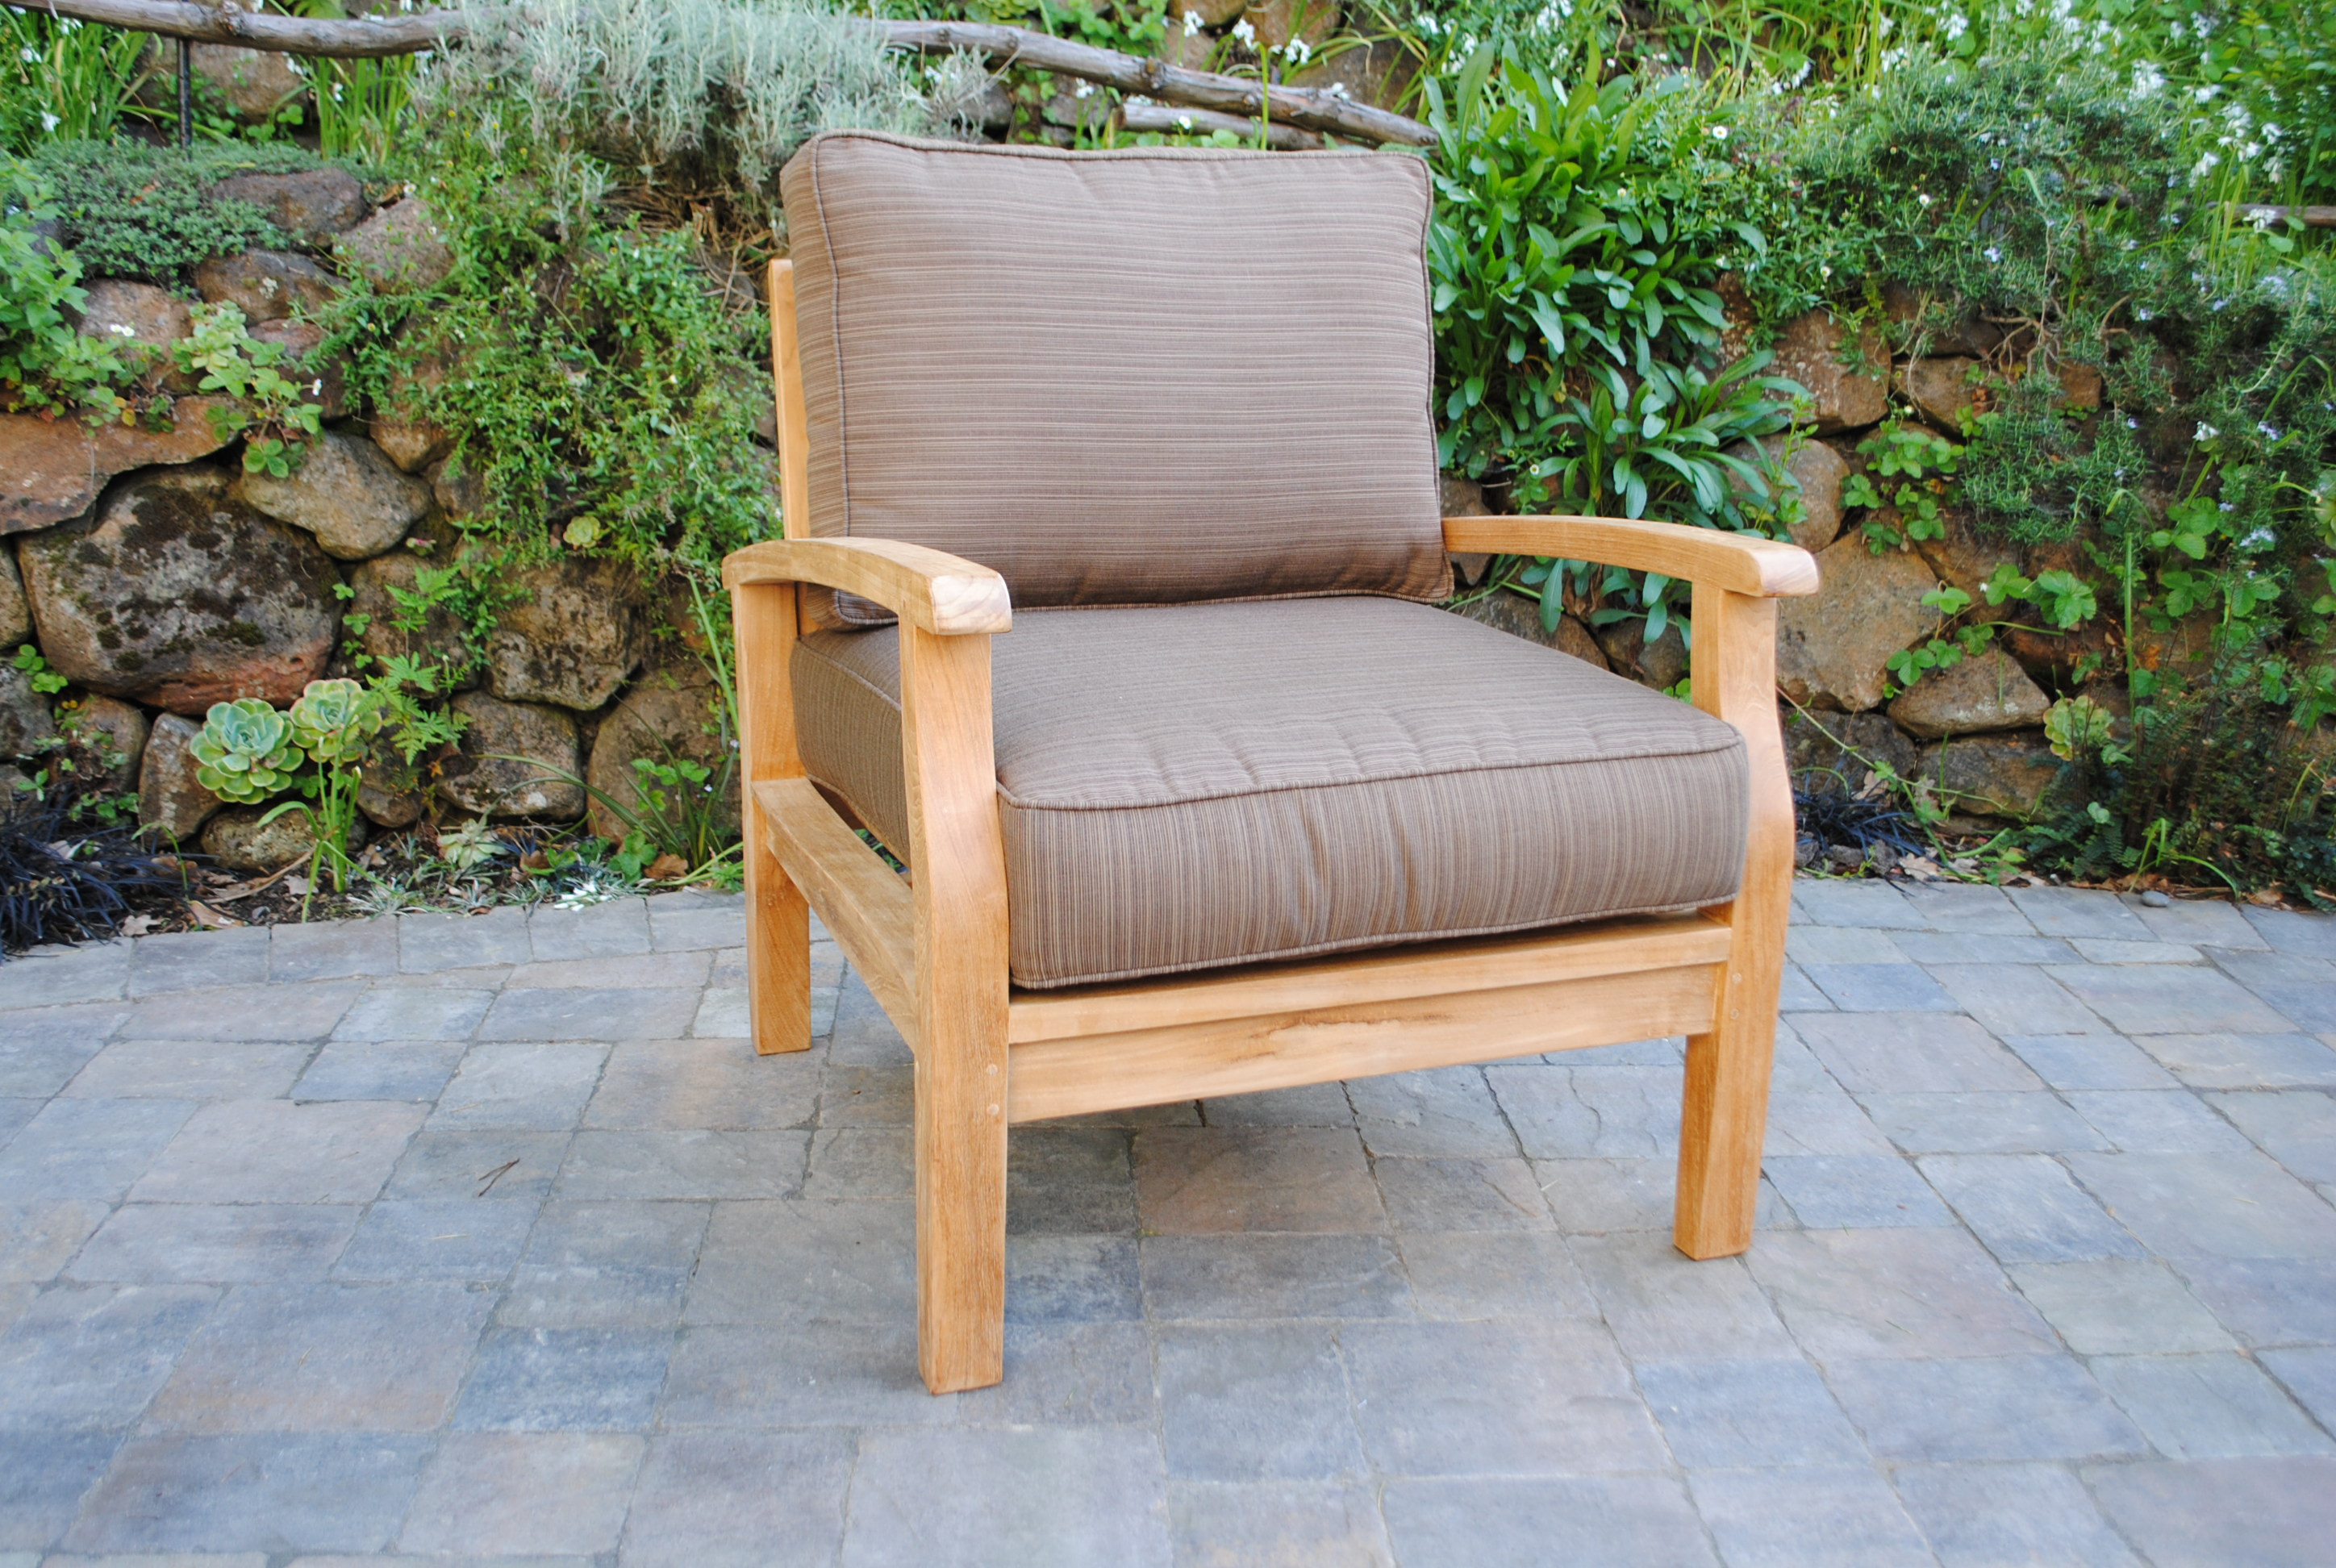 Sonoma Deep Seating Lounge Chair With Sunbrella Cushions Paradise Teak